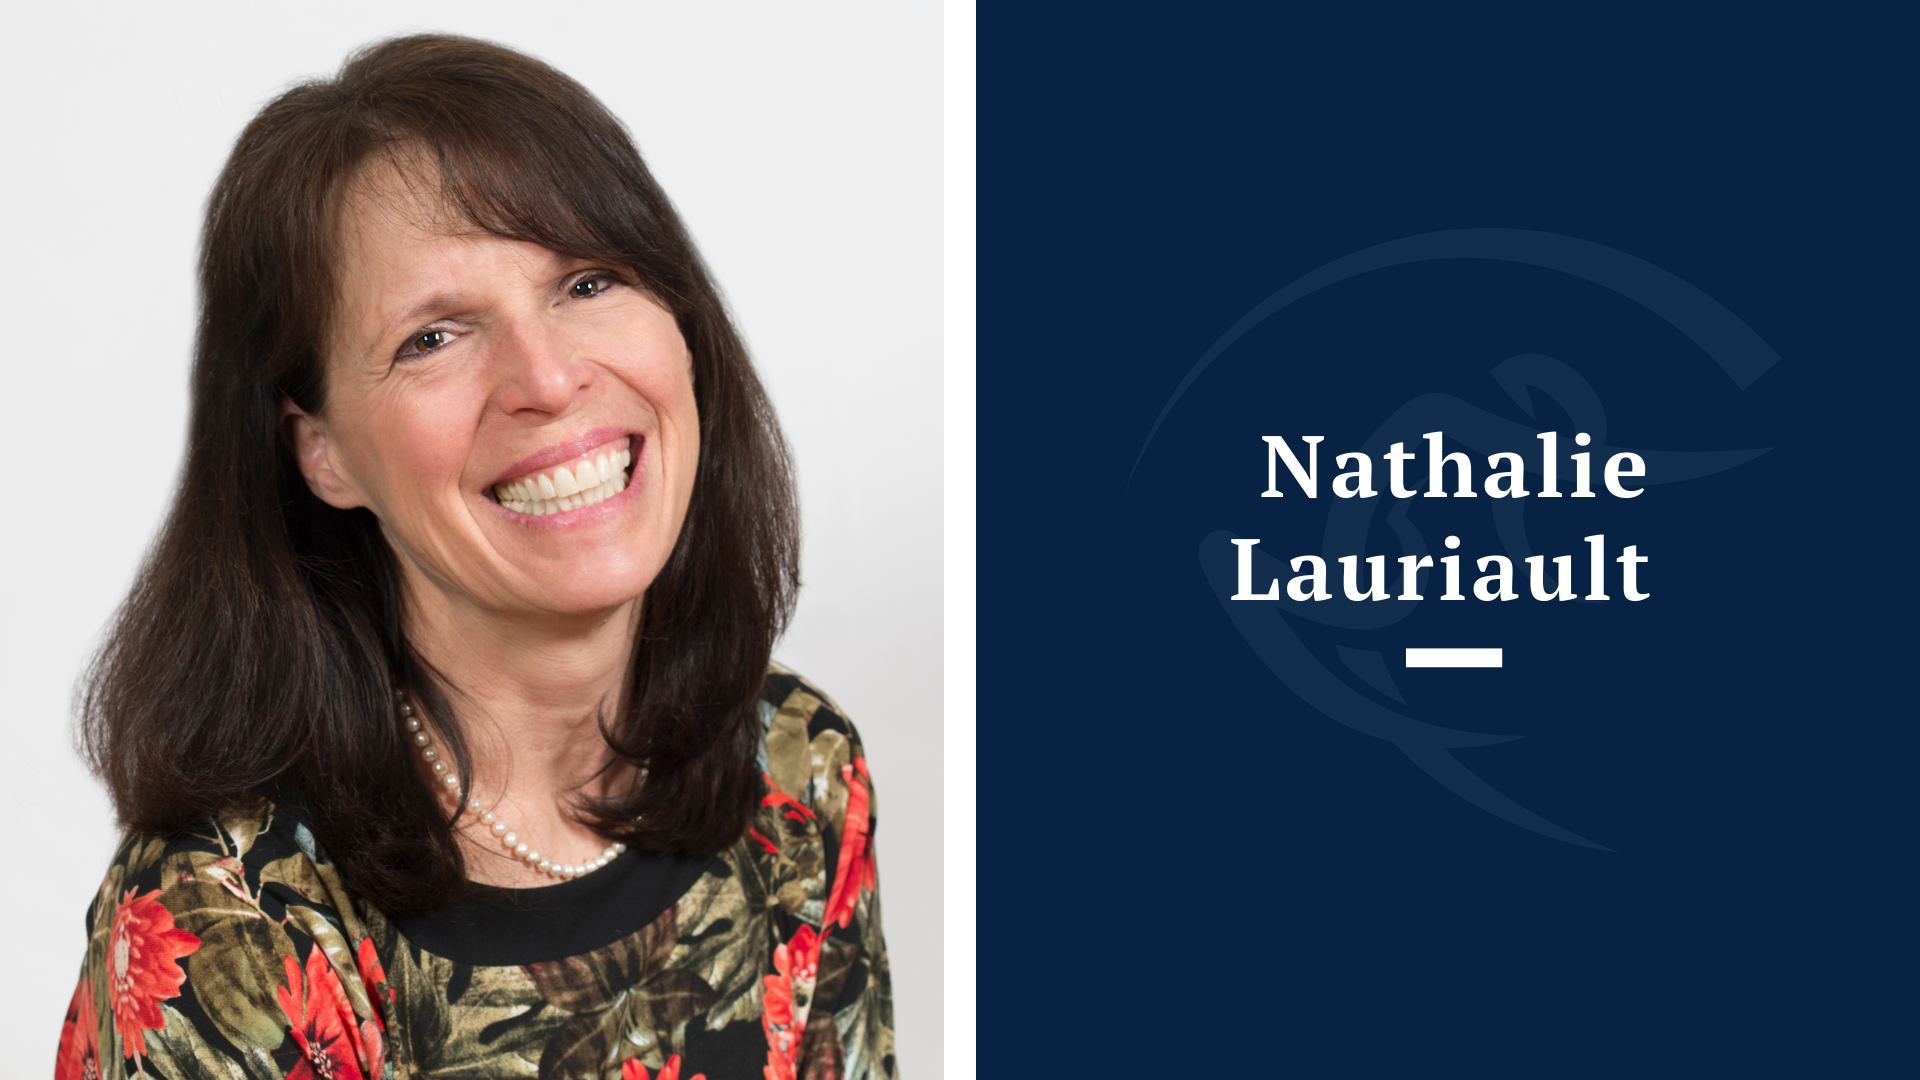 Nathalie Lauriault | Embodied Learnings